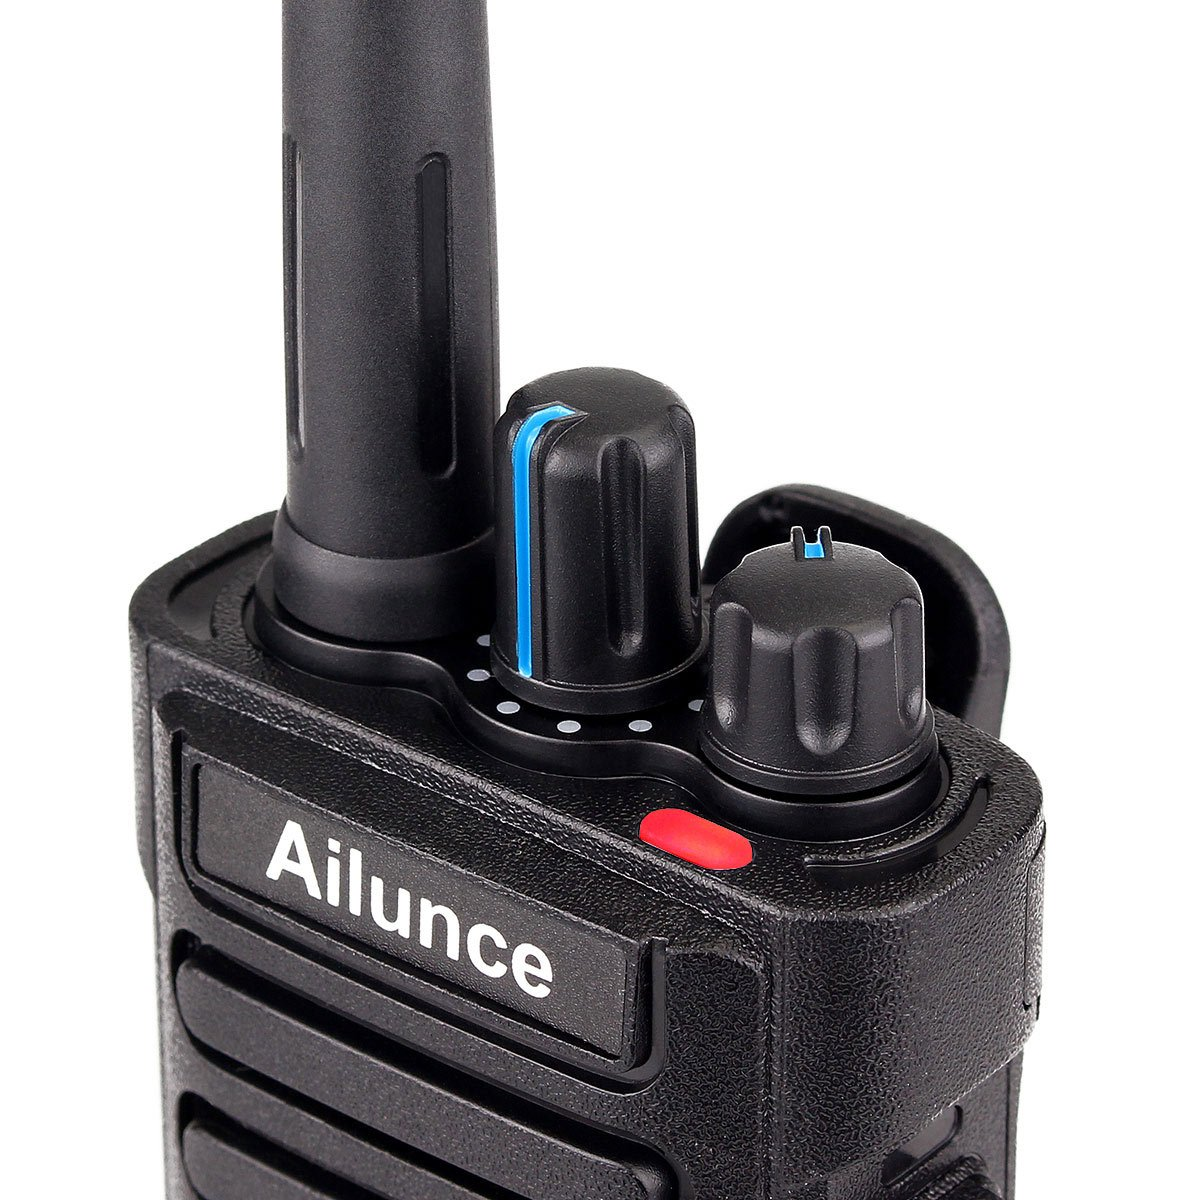 Ailunce HD1 DMR Digital Ham Radio Dual Band Dual Time Slot 10W 3000Channels 100000 Contacts 3200mAhz Waterproof long Range Two Way Radio with FM Function and Programming Cable(Black,1pack) by Ailunce (Image #3)